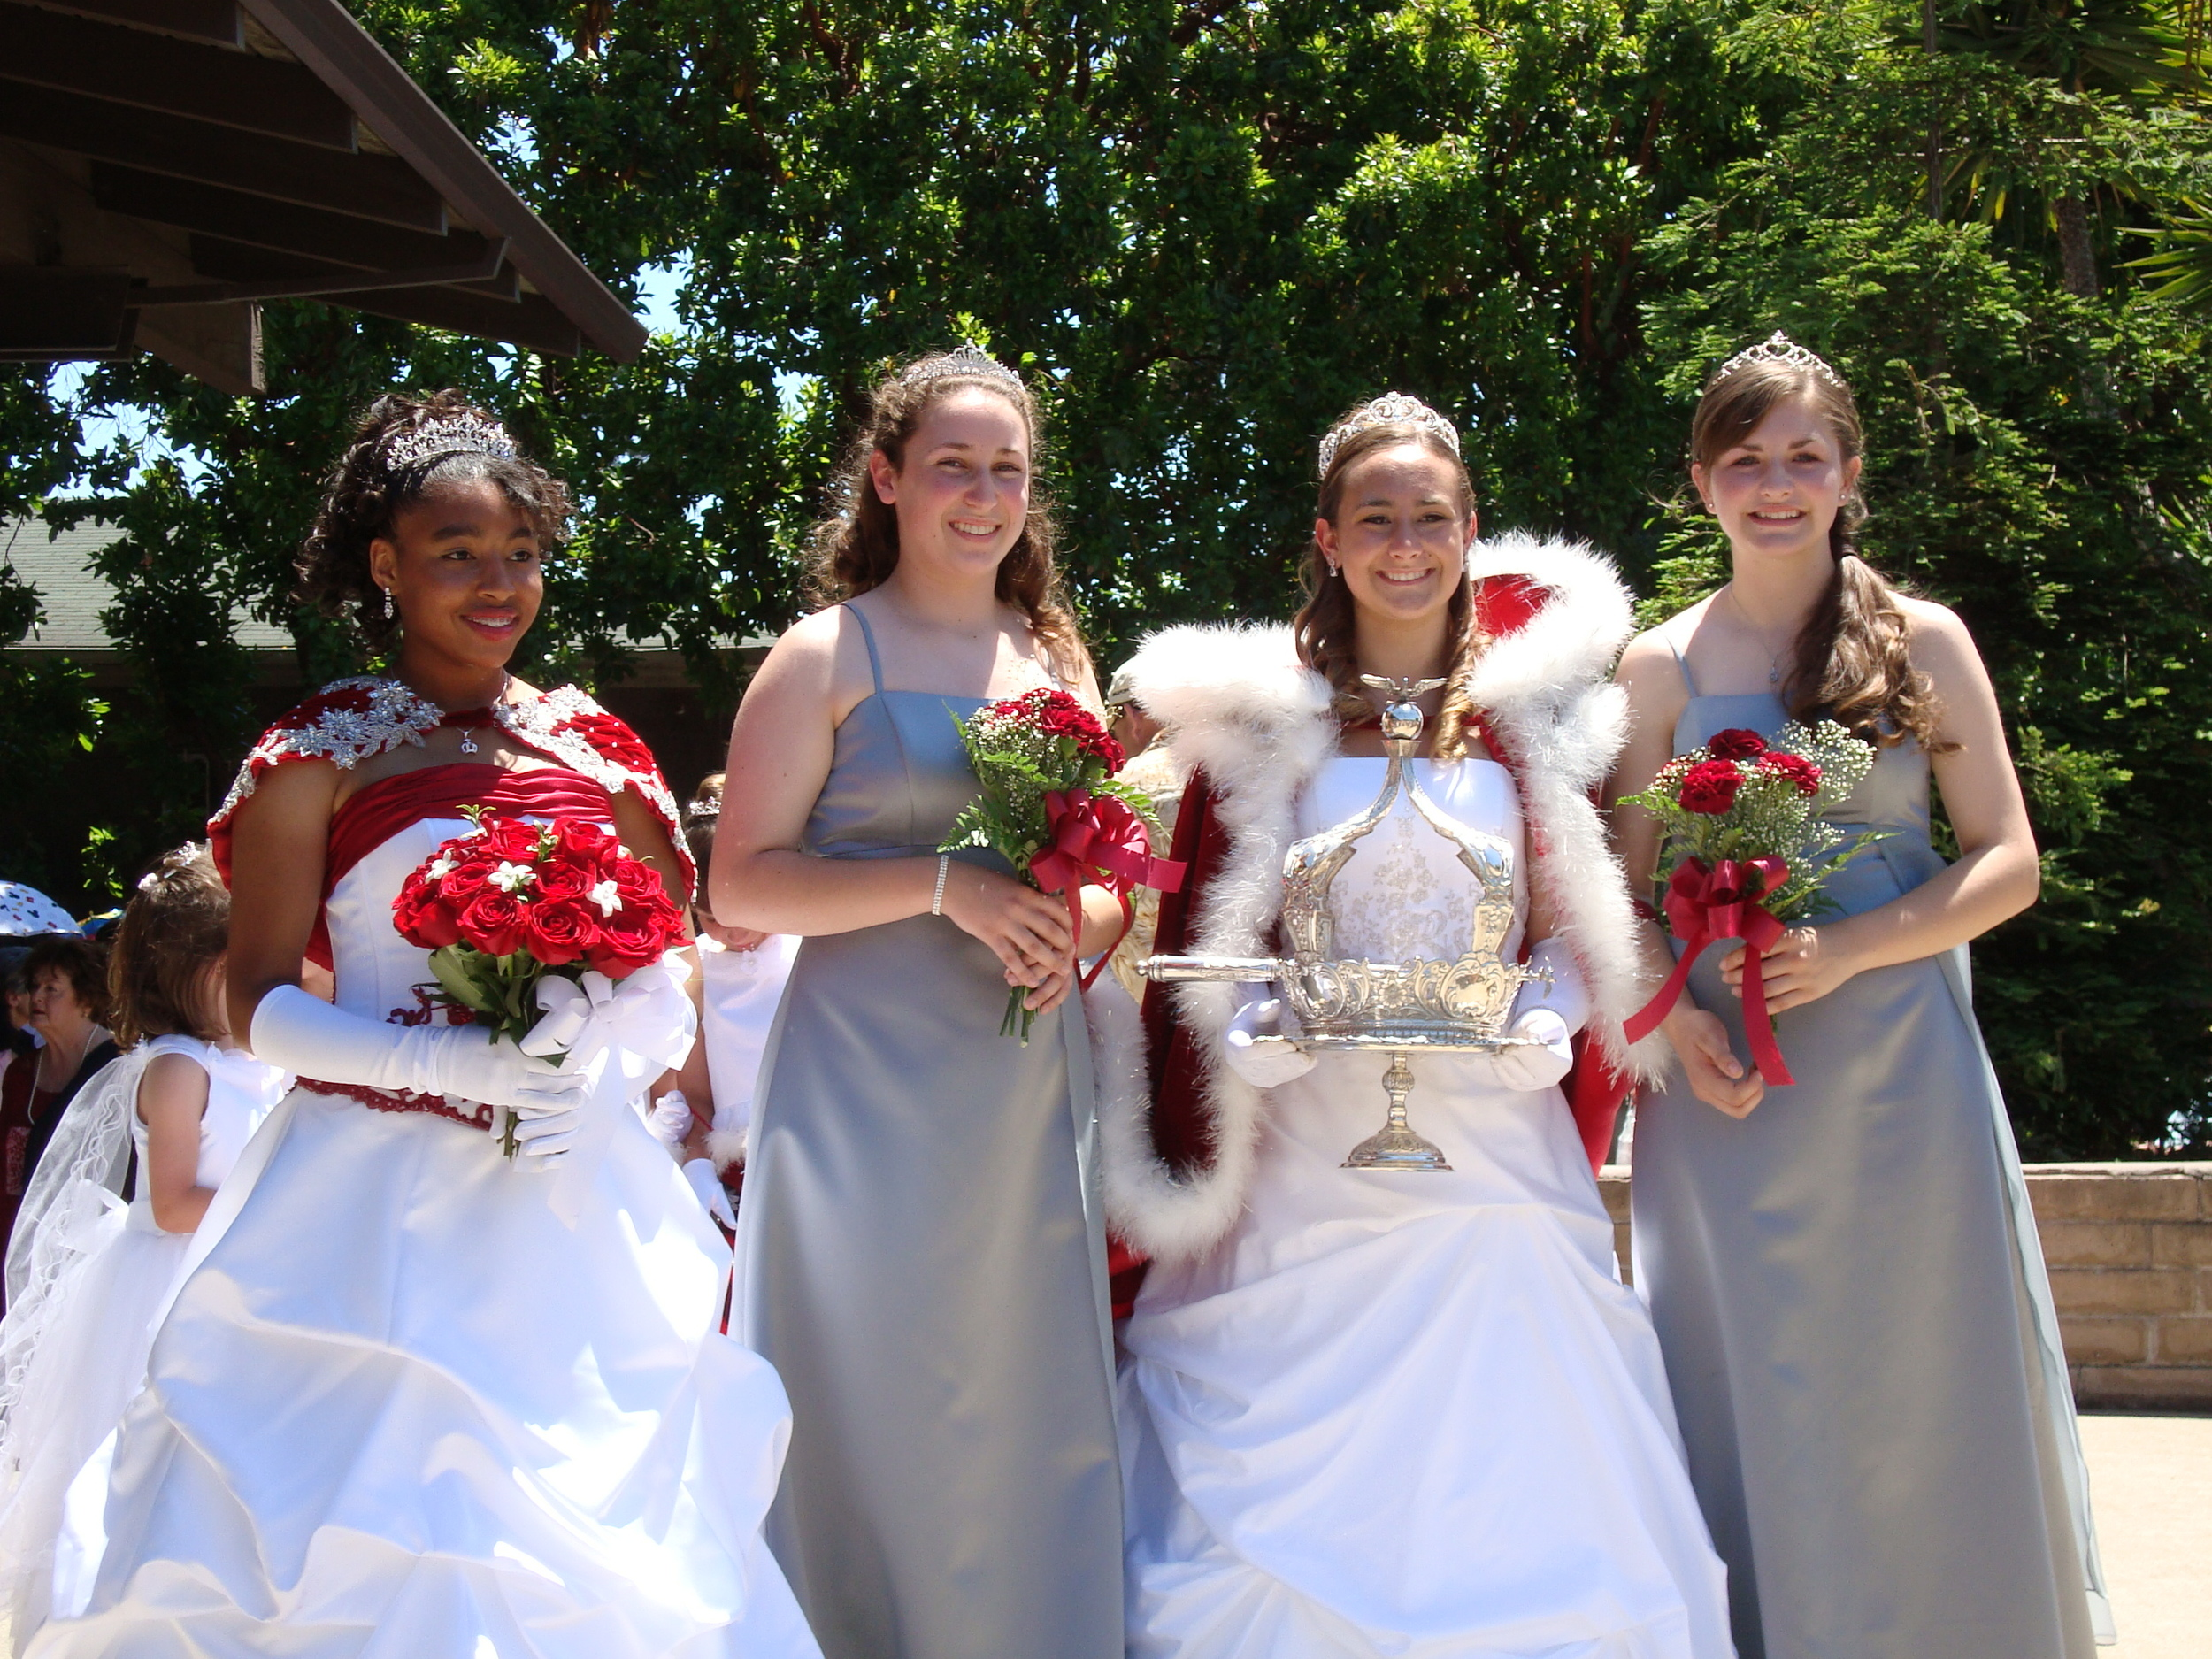 2008 Festival Queen -  Kimberly Dutrow    Sidemaids - Molly Zamora & Amy Moore -Honor Maid - Natalie Bright